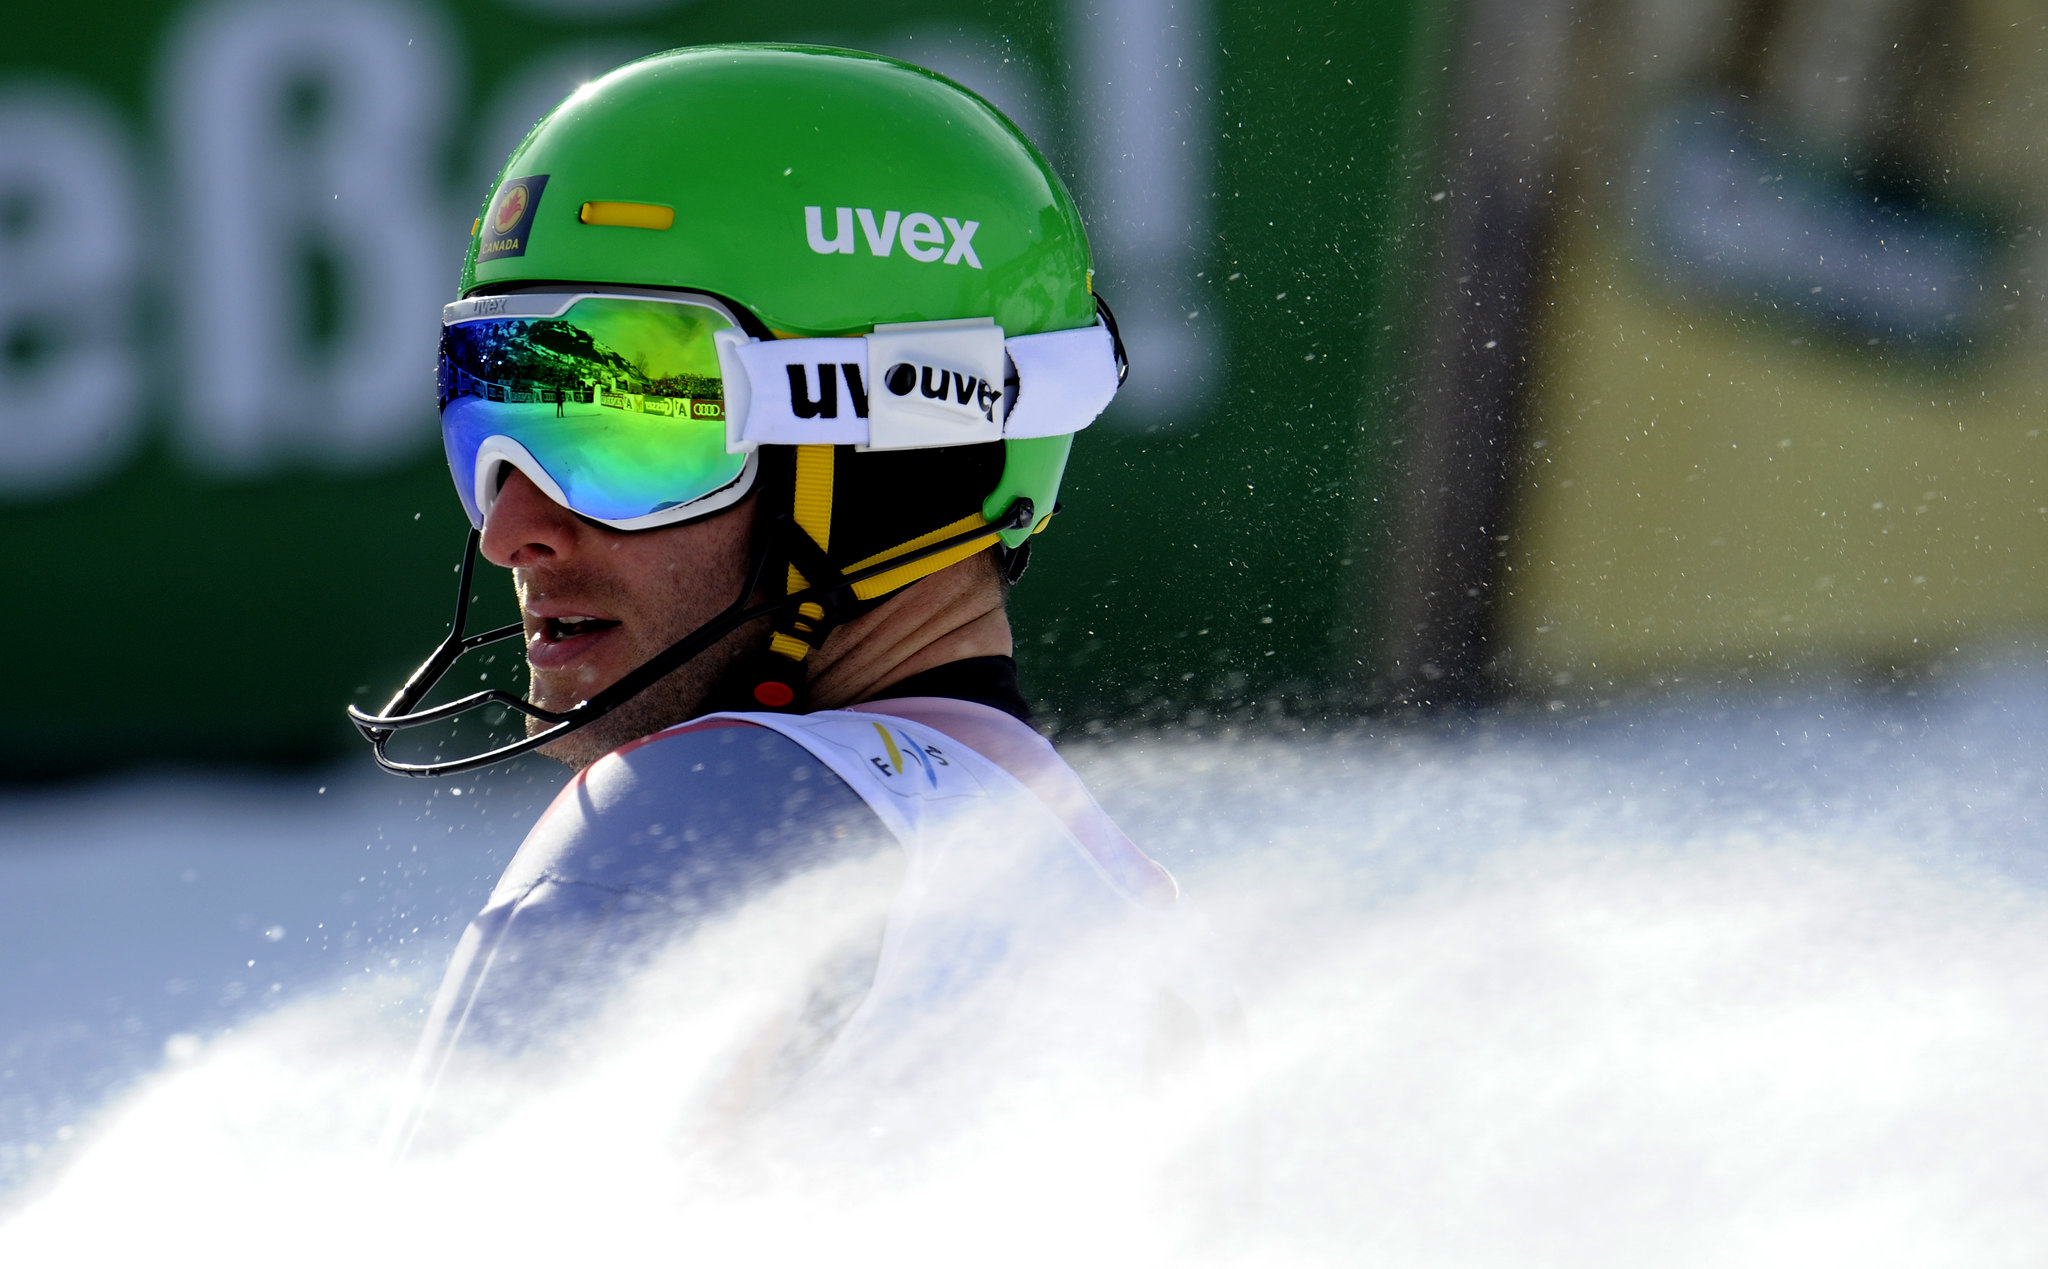 Mike Janyk kicks up spray at the finish of the men's slalom in Kitzbühel.